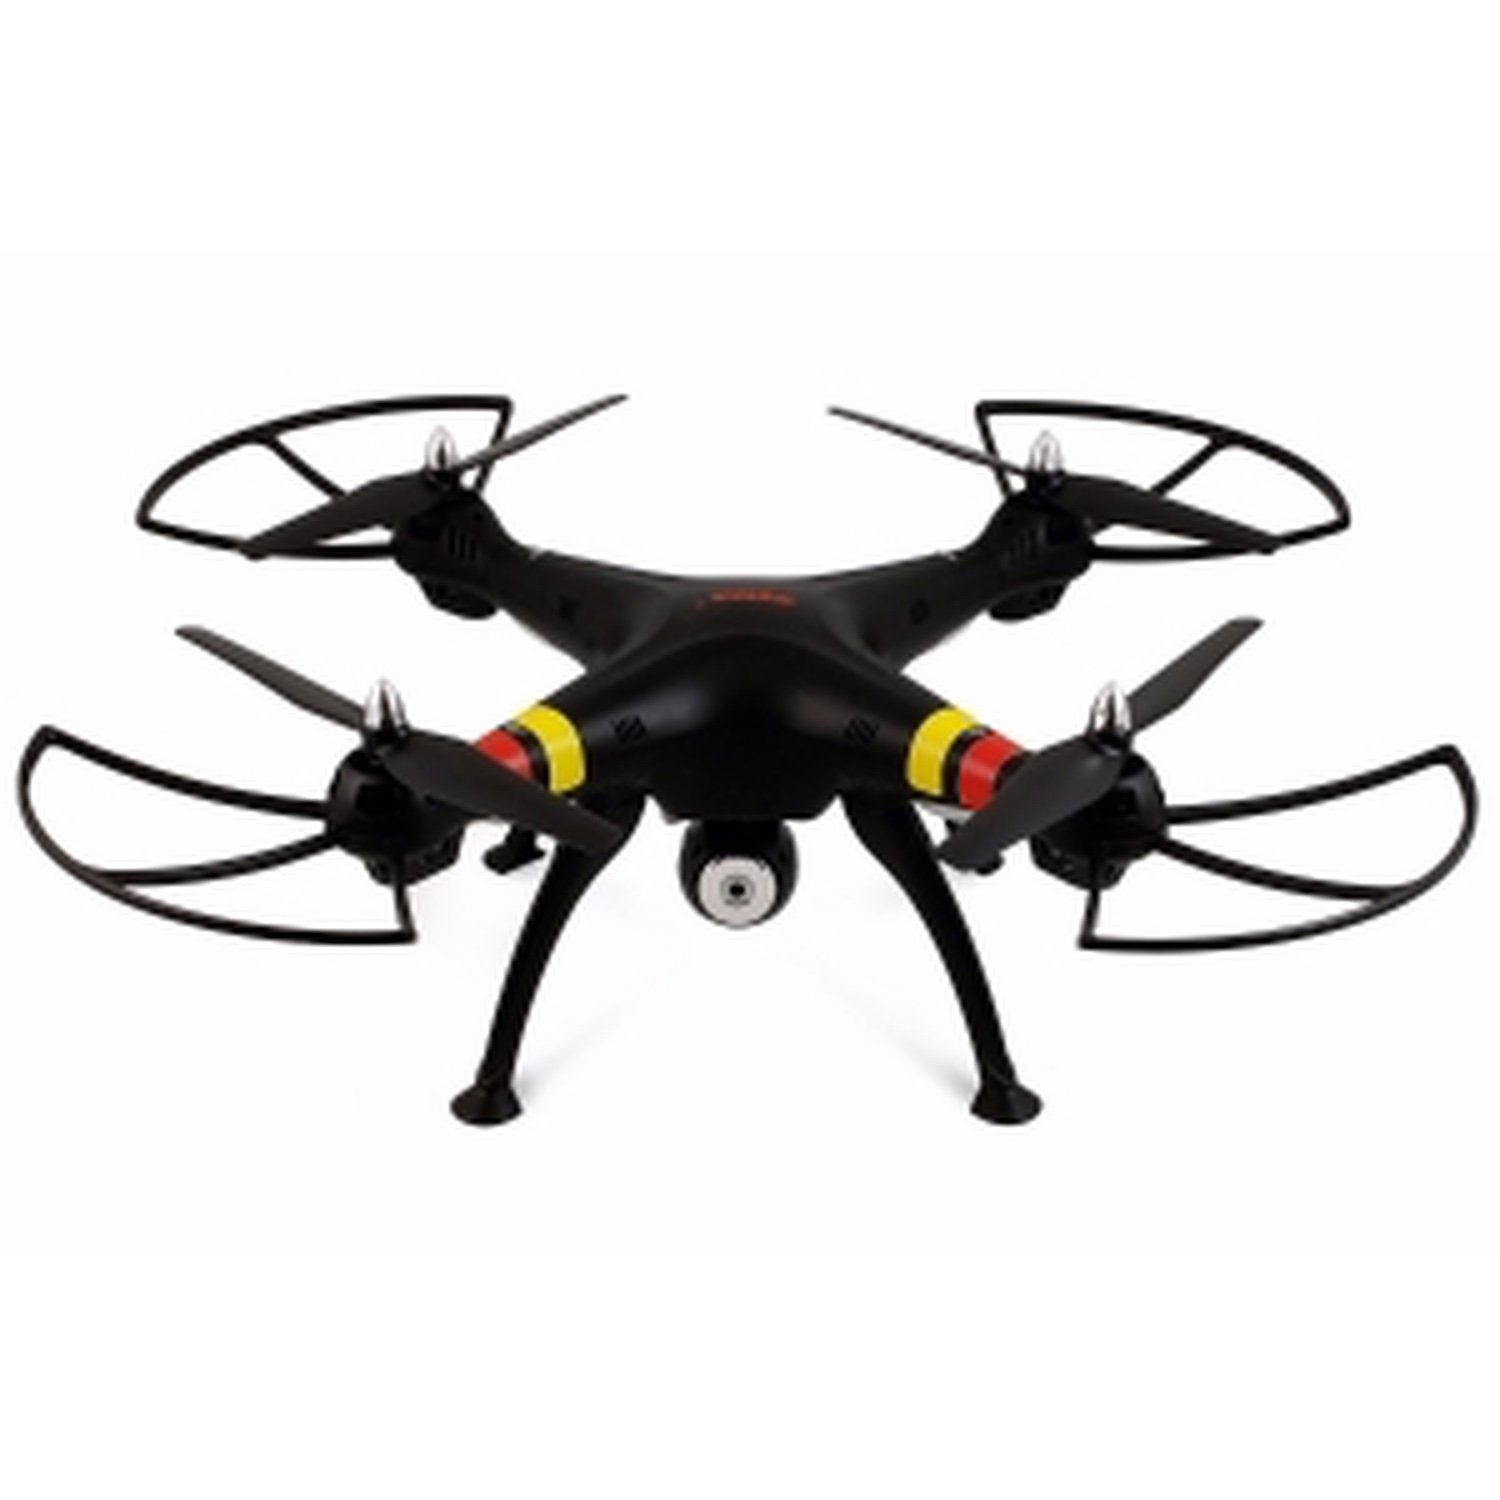 QUADCOPTER DRONE SYMA X8W FPV Explorers 2.4GHz 4ch 6 axis Gyro RC CAMERA HD WIFI недорого